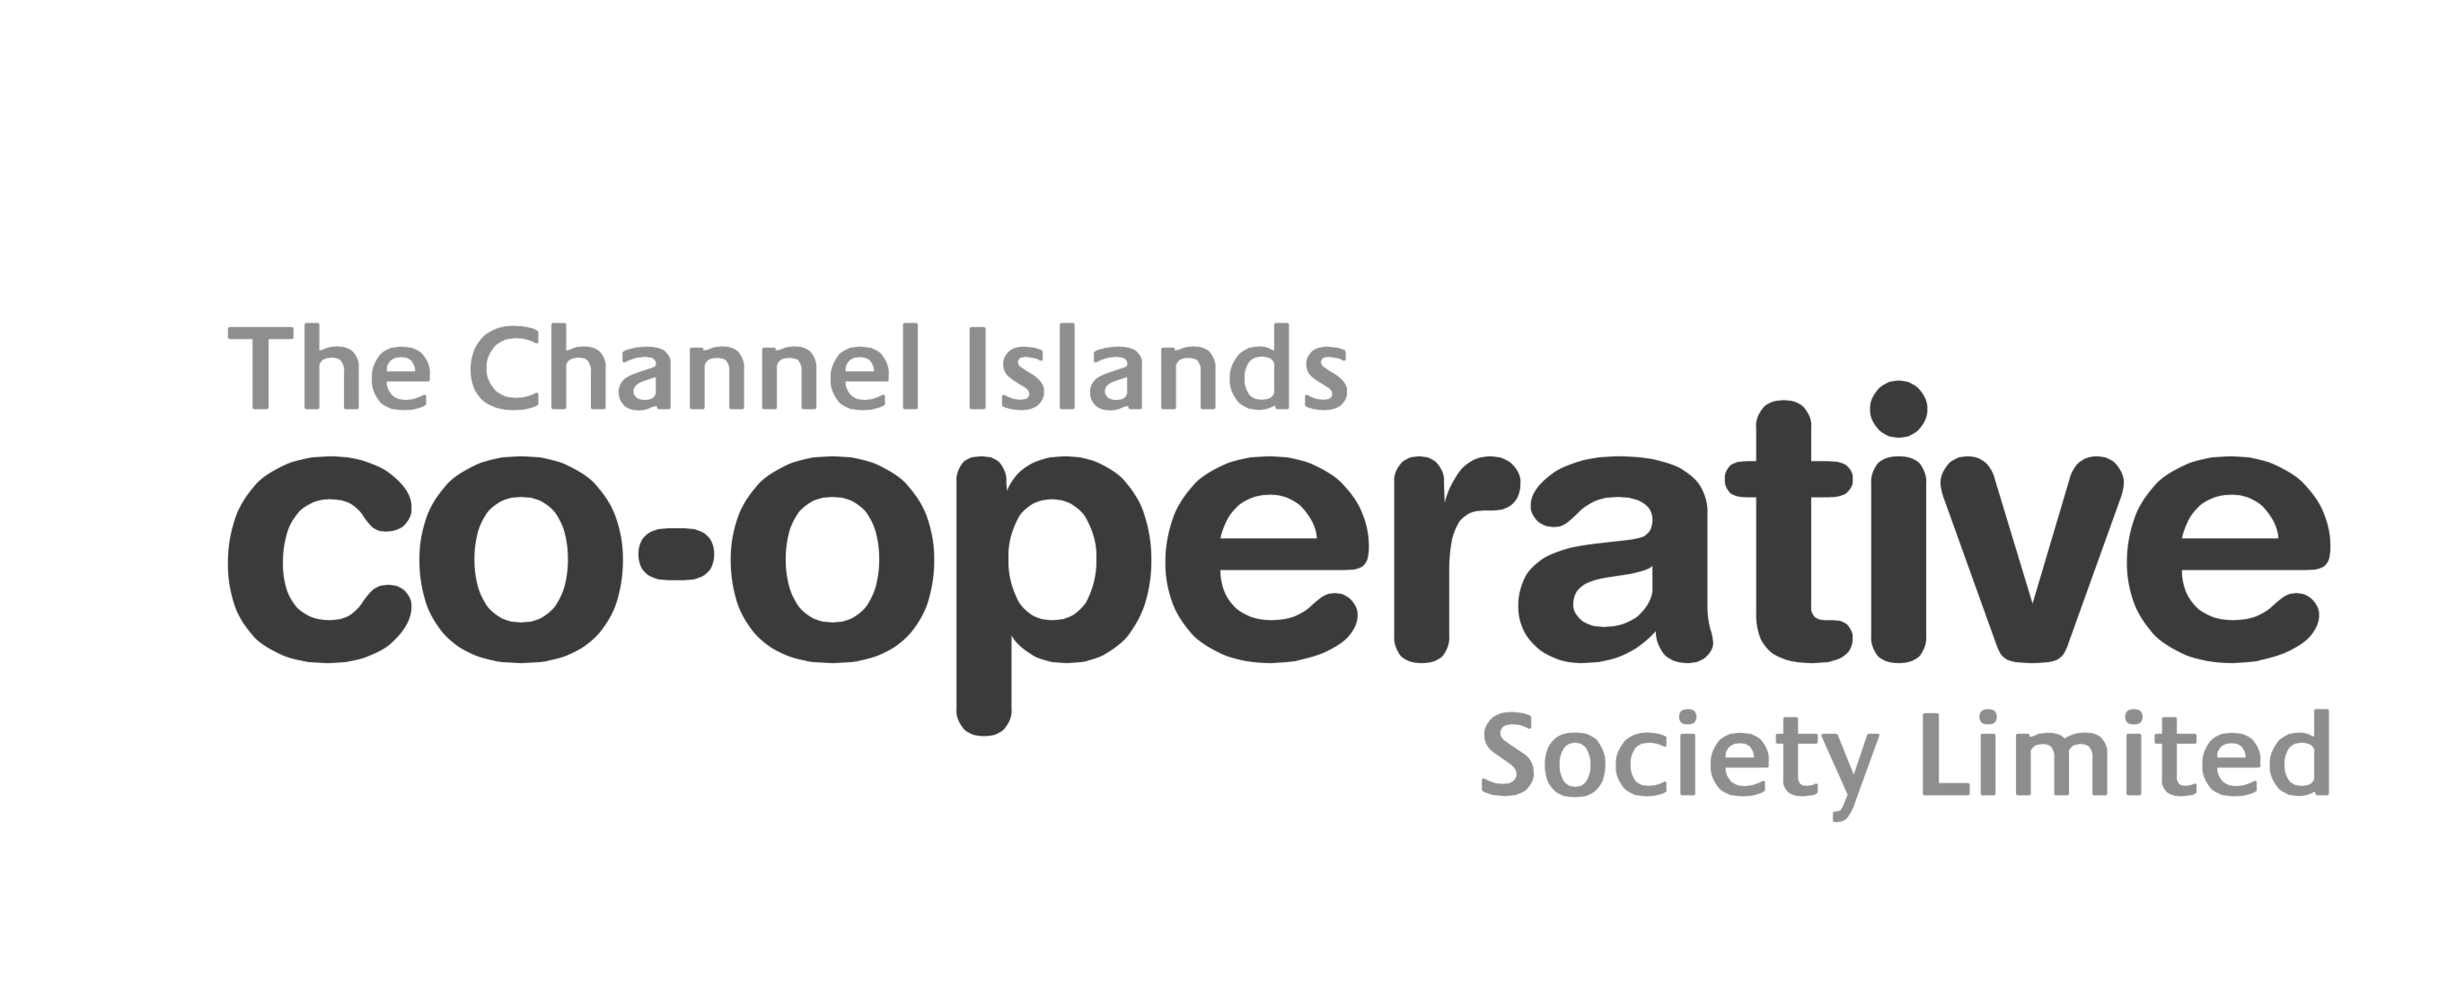 Co-operative Society Logo